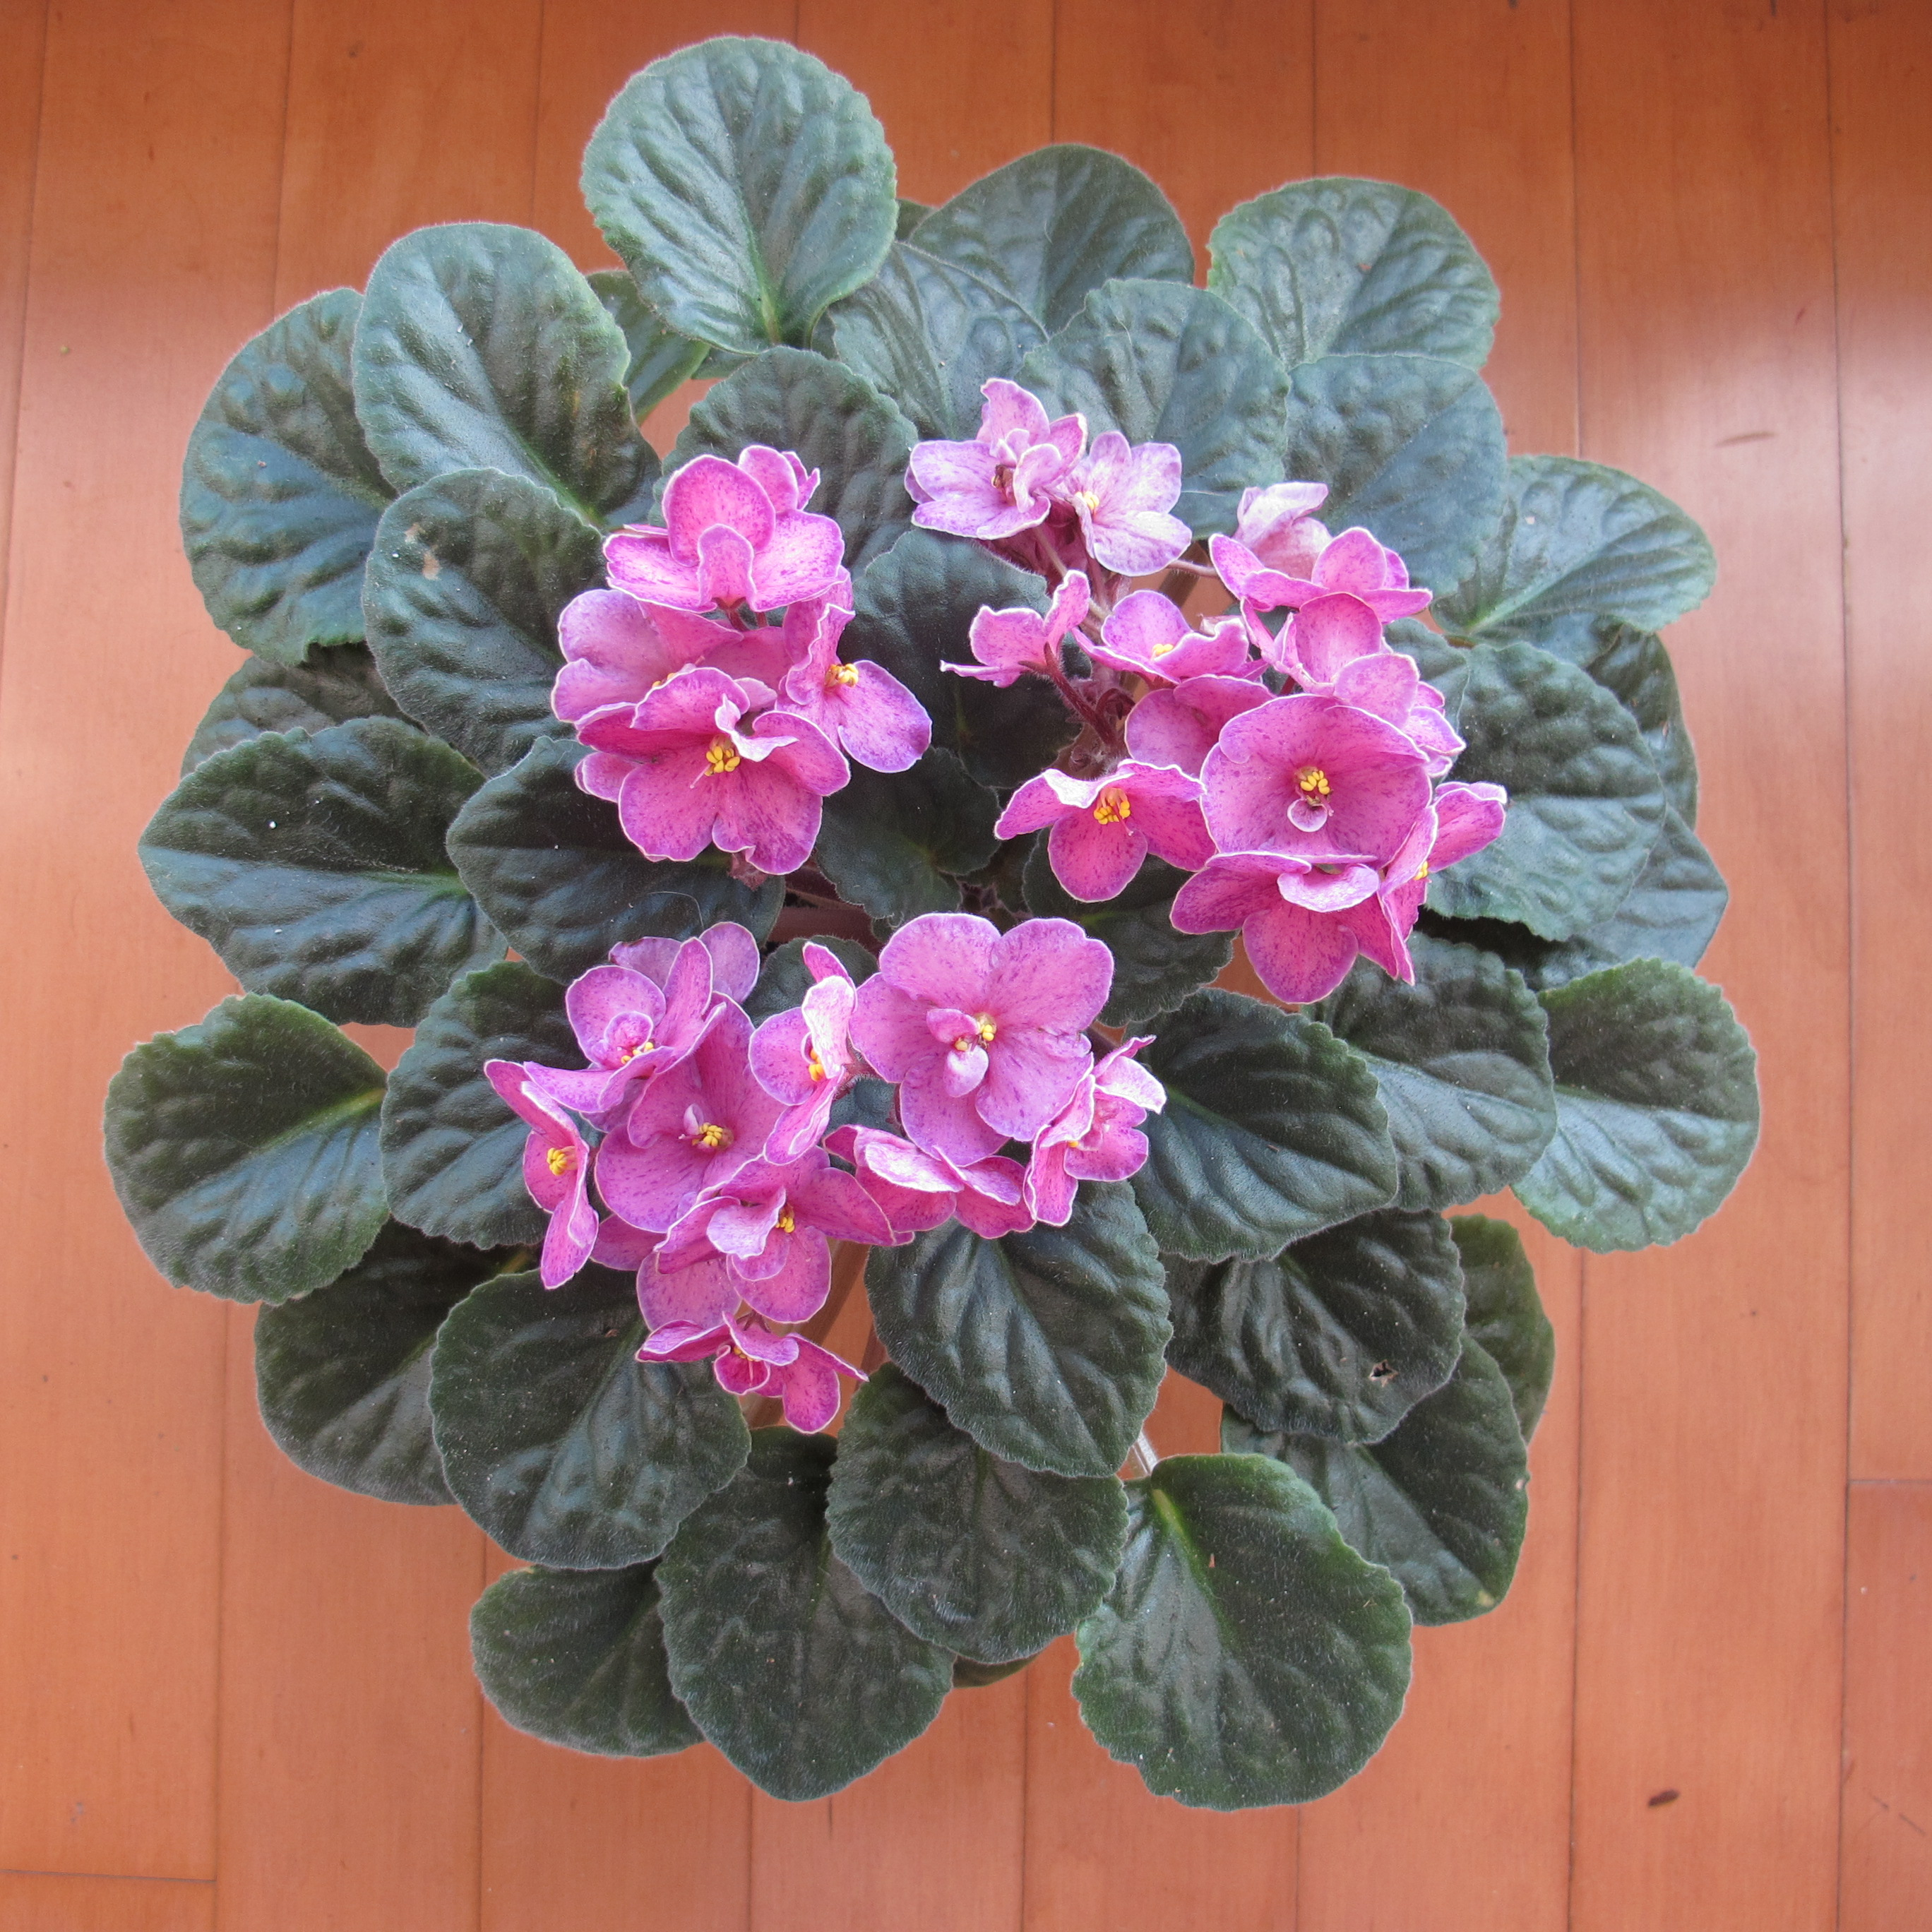 Small House Plants With Flowers Admin Page 2 Houseplants Now